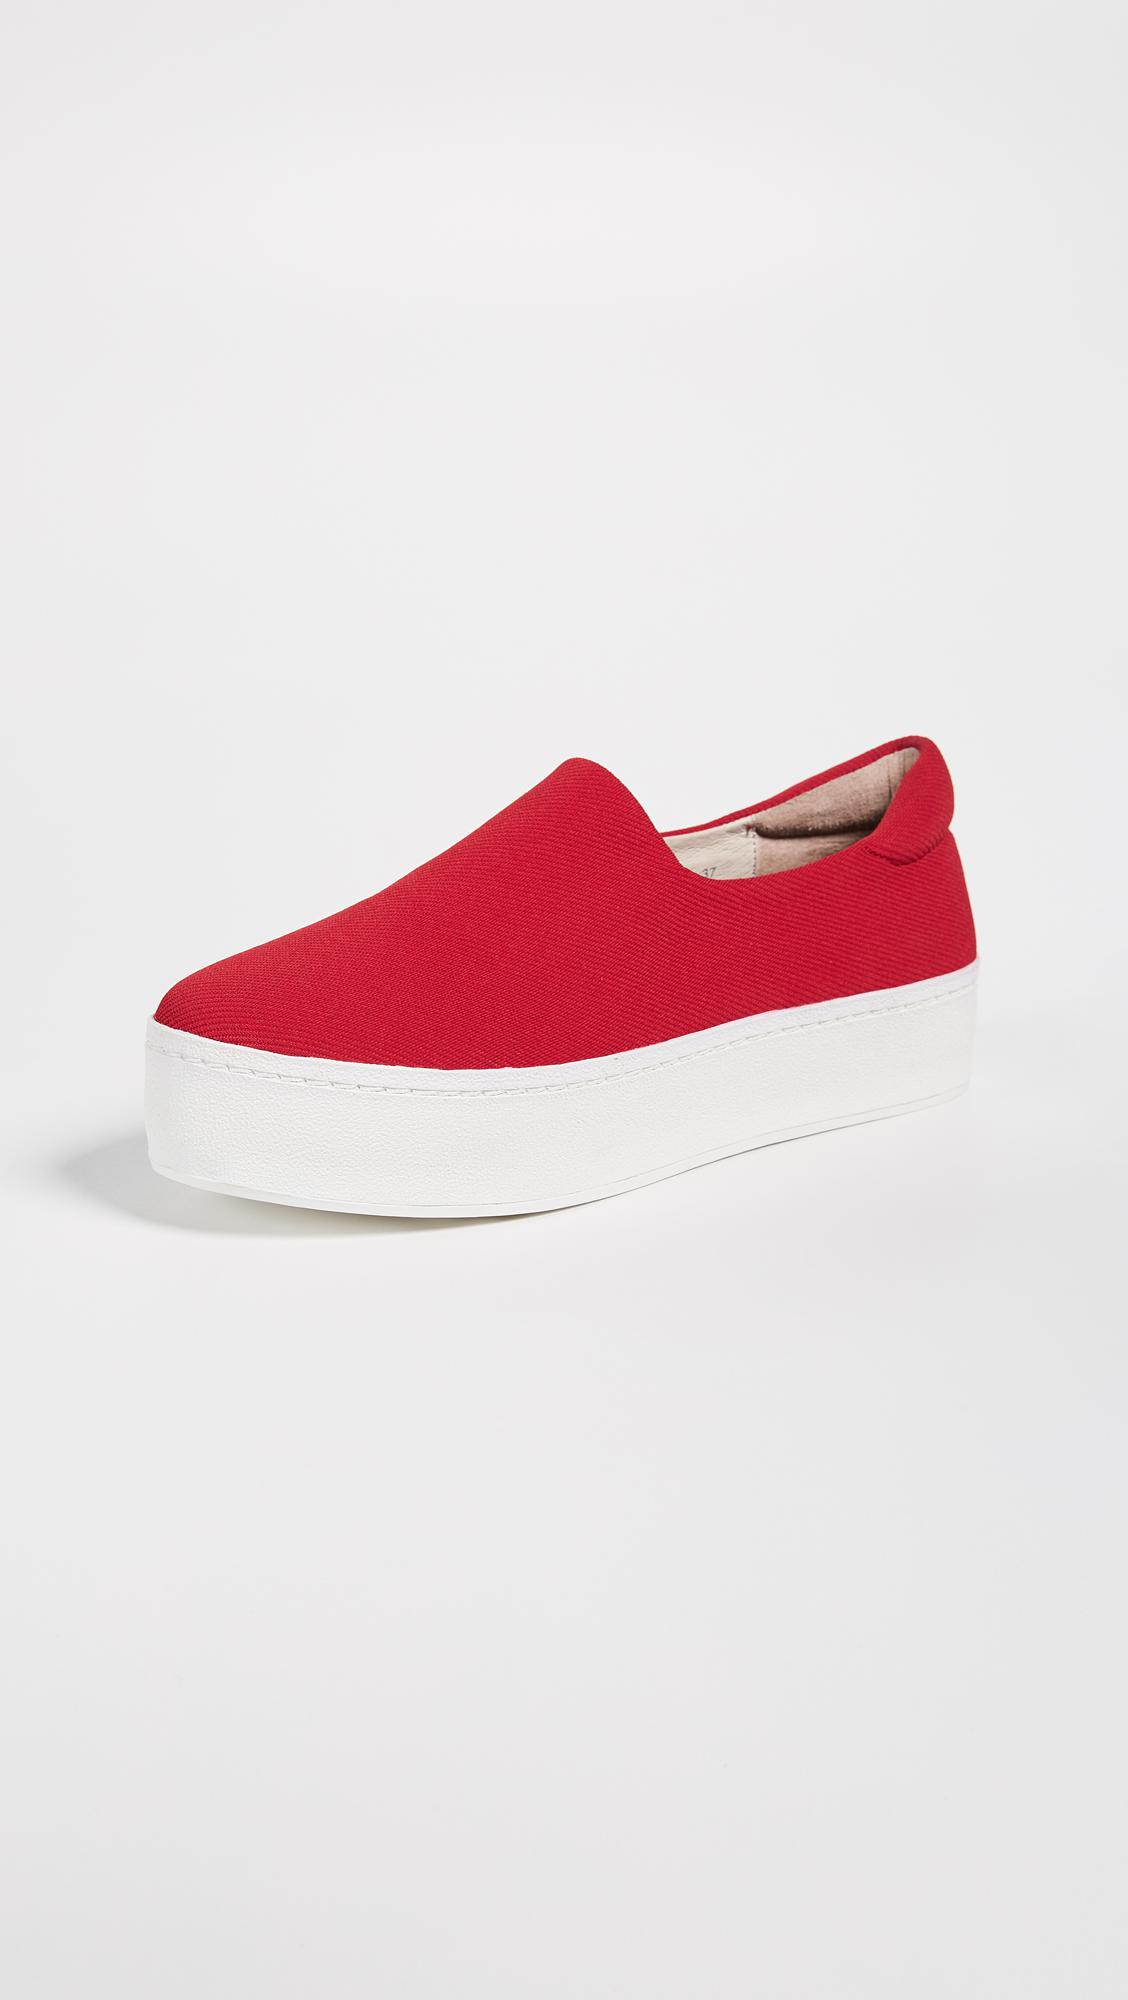 8c165e5afe56 Lyst - Opening Ceremony Cici Slip On Platform Sneakers in Red - Save 30%